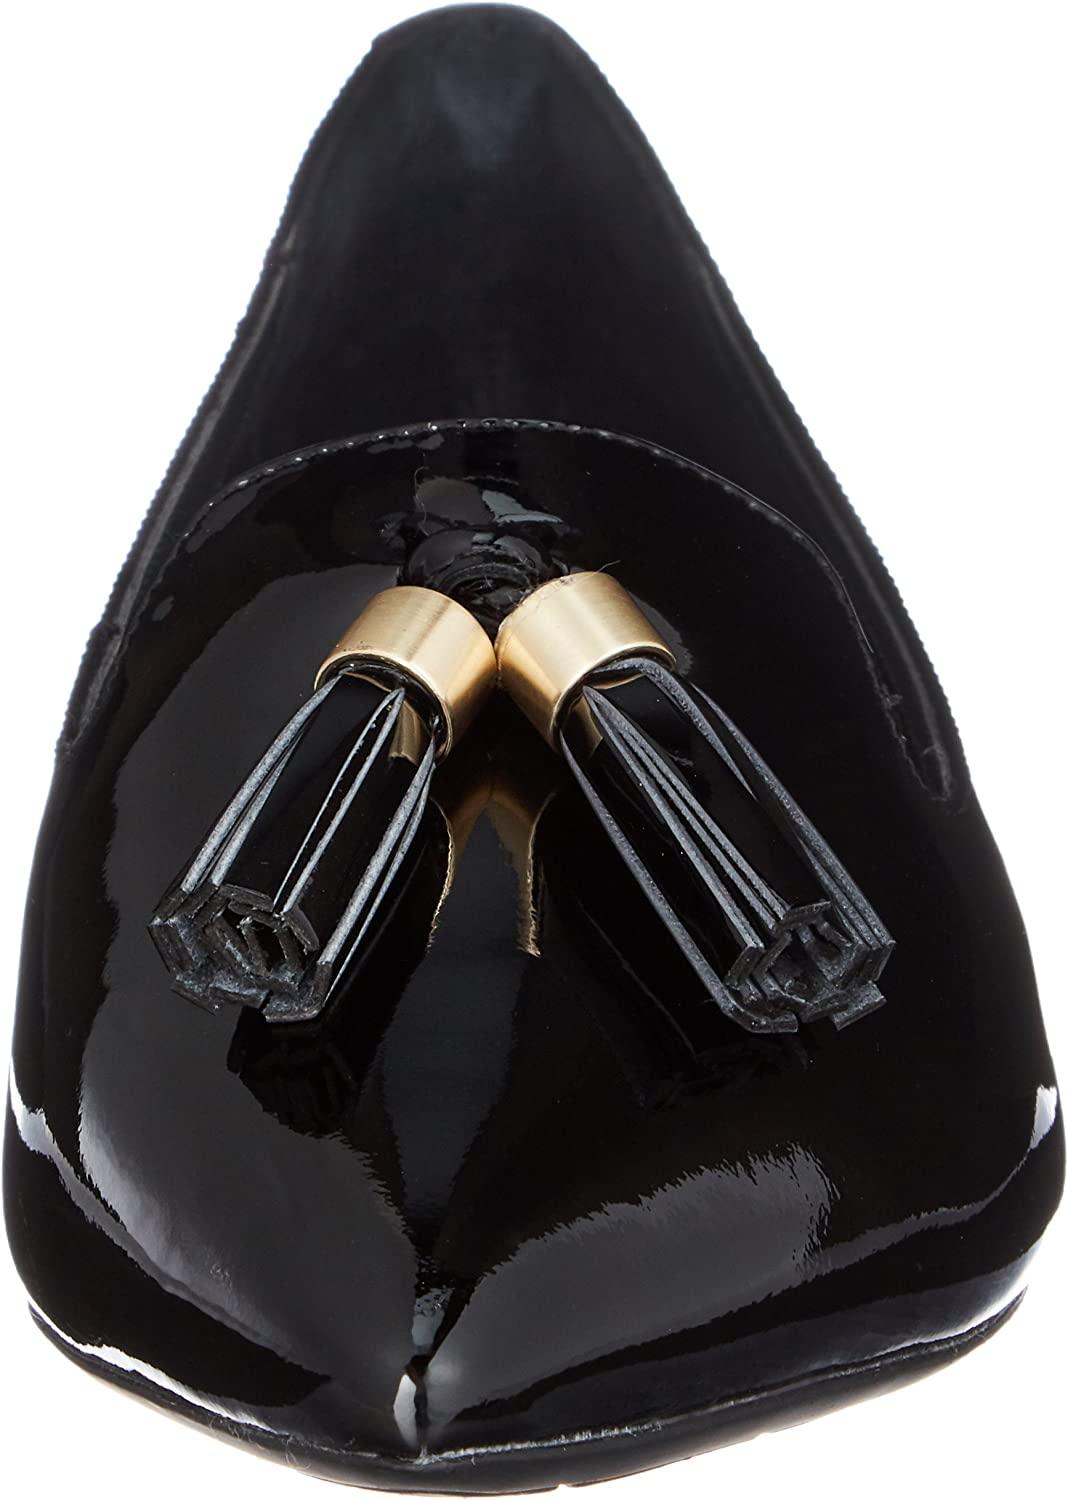 Rockport Women's Total Motion Zuly Luxe Loafer Black